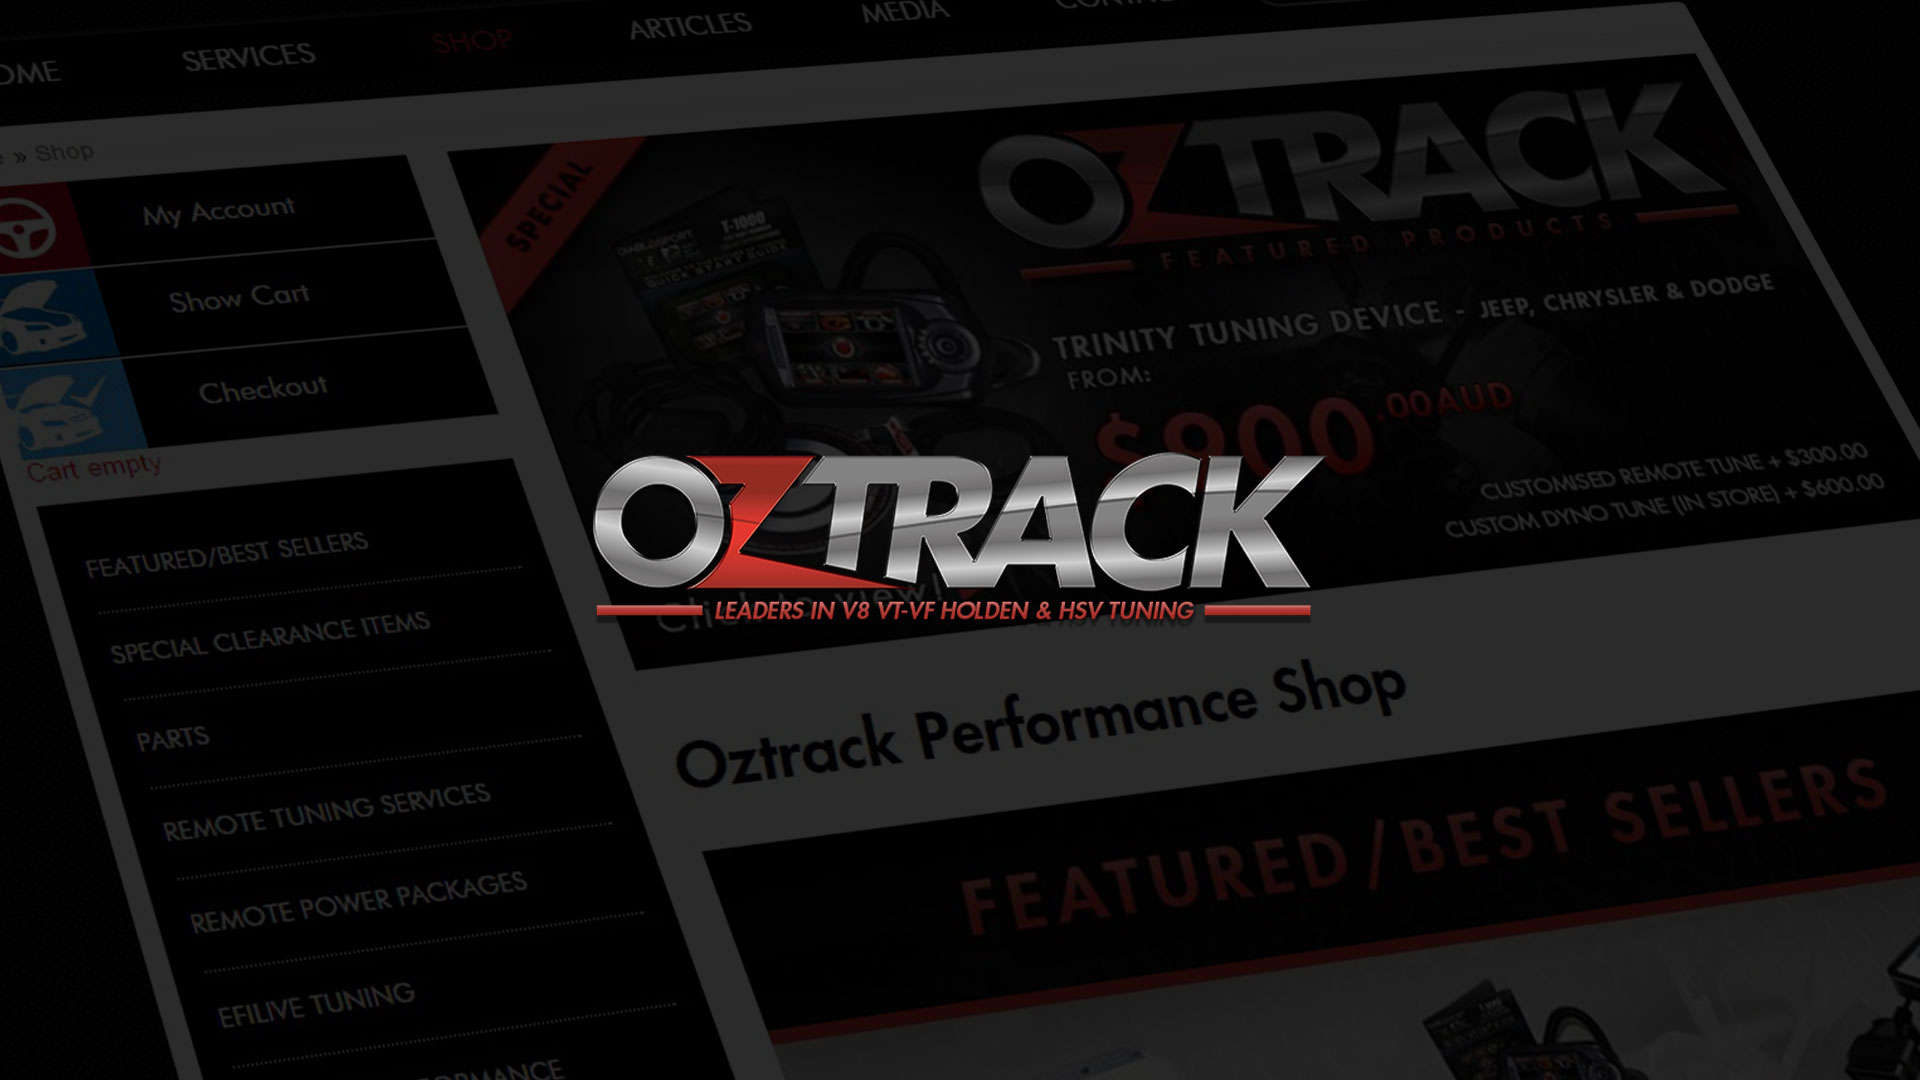 oztrack-feat-large